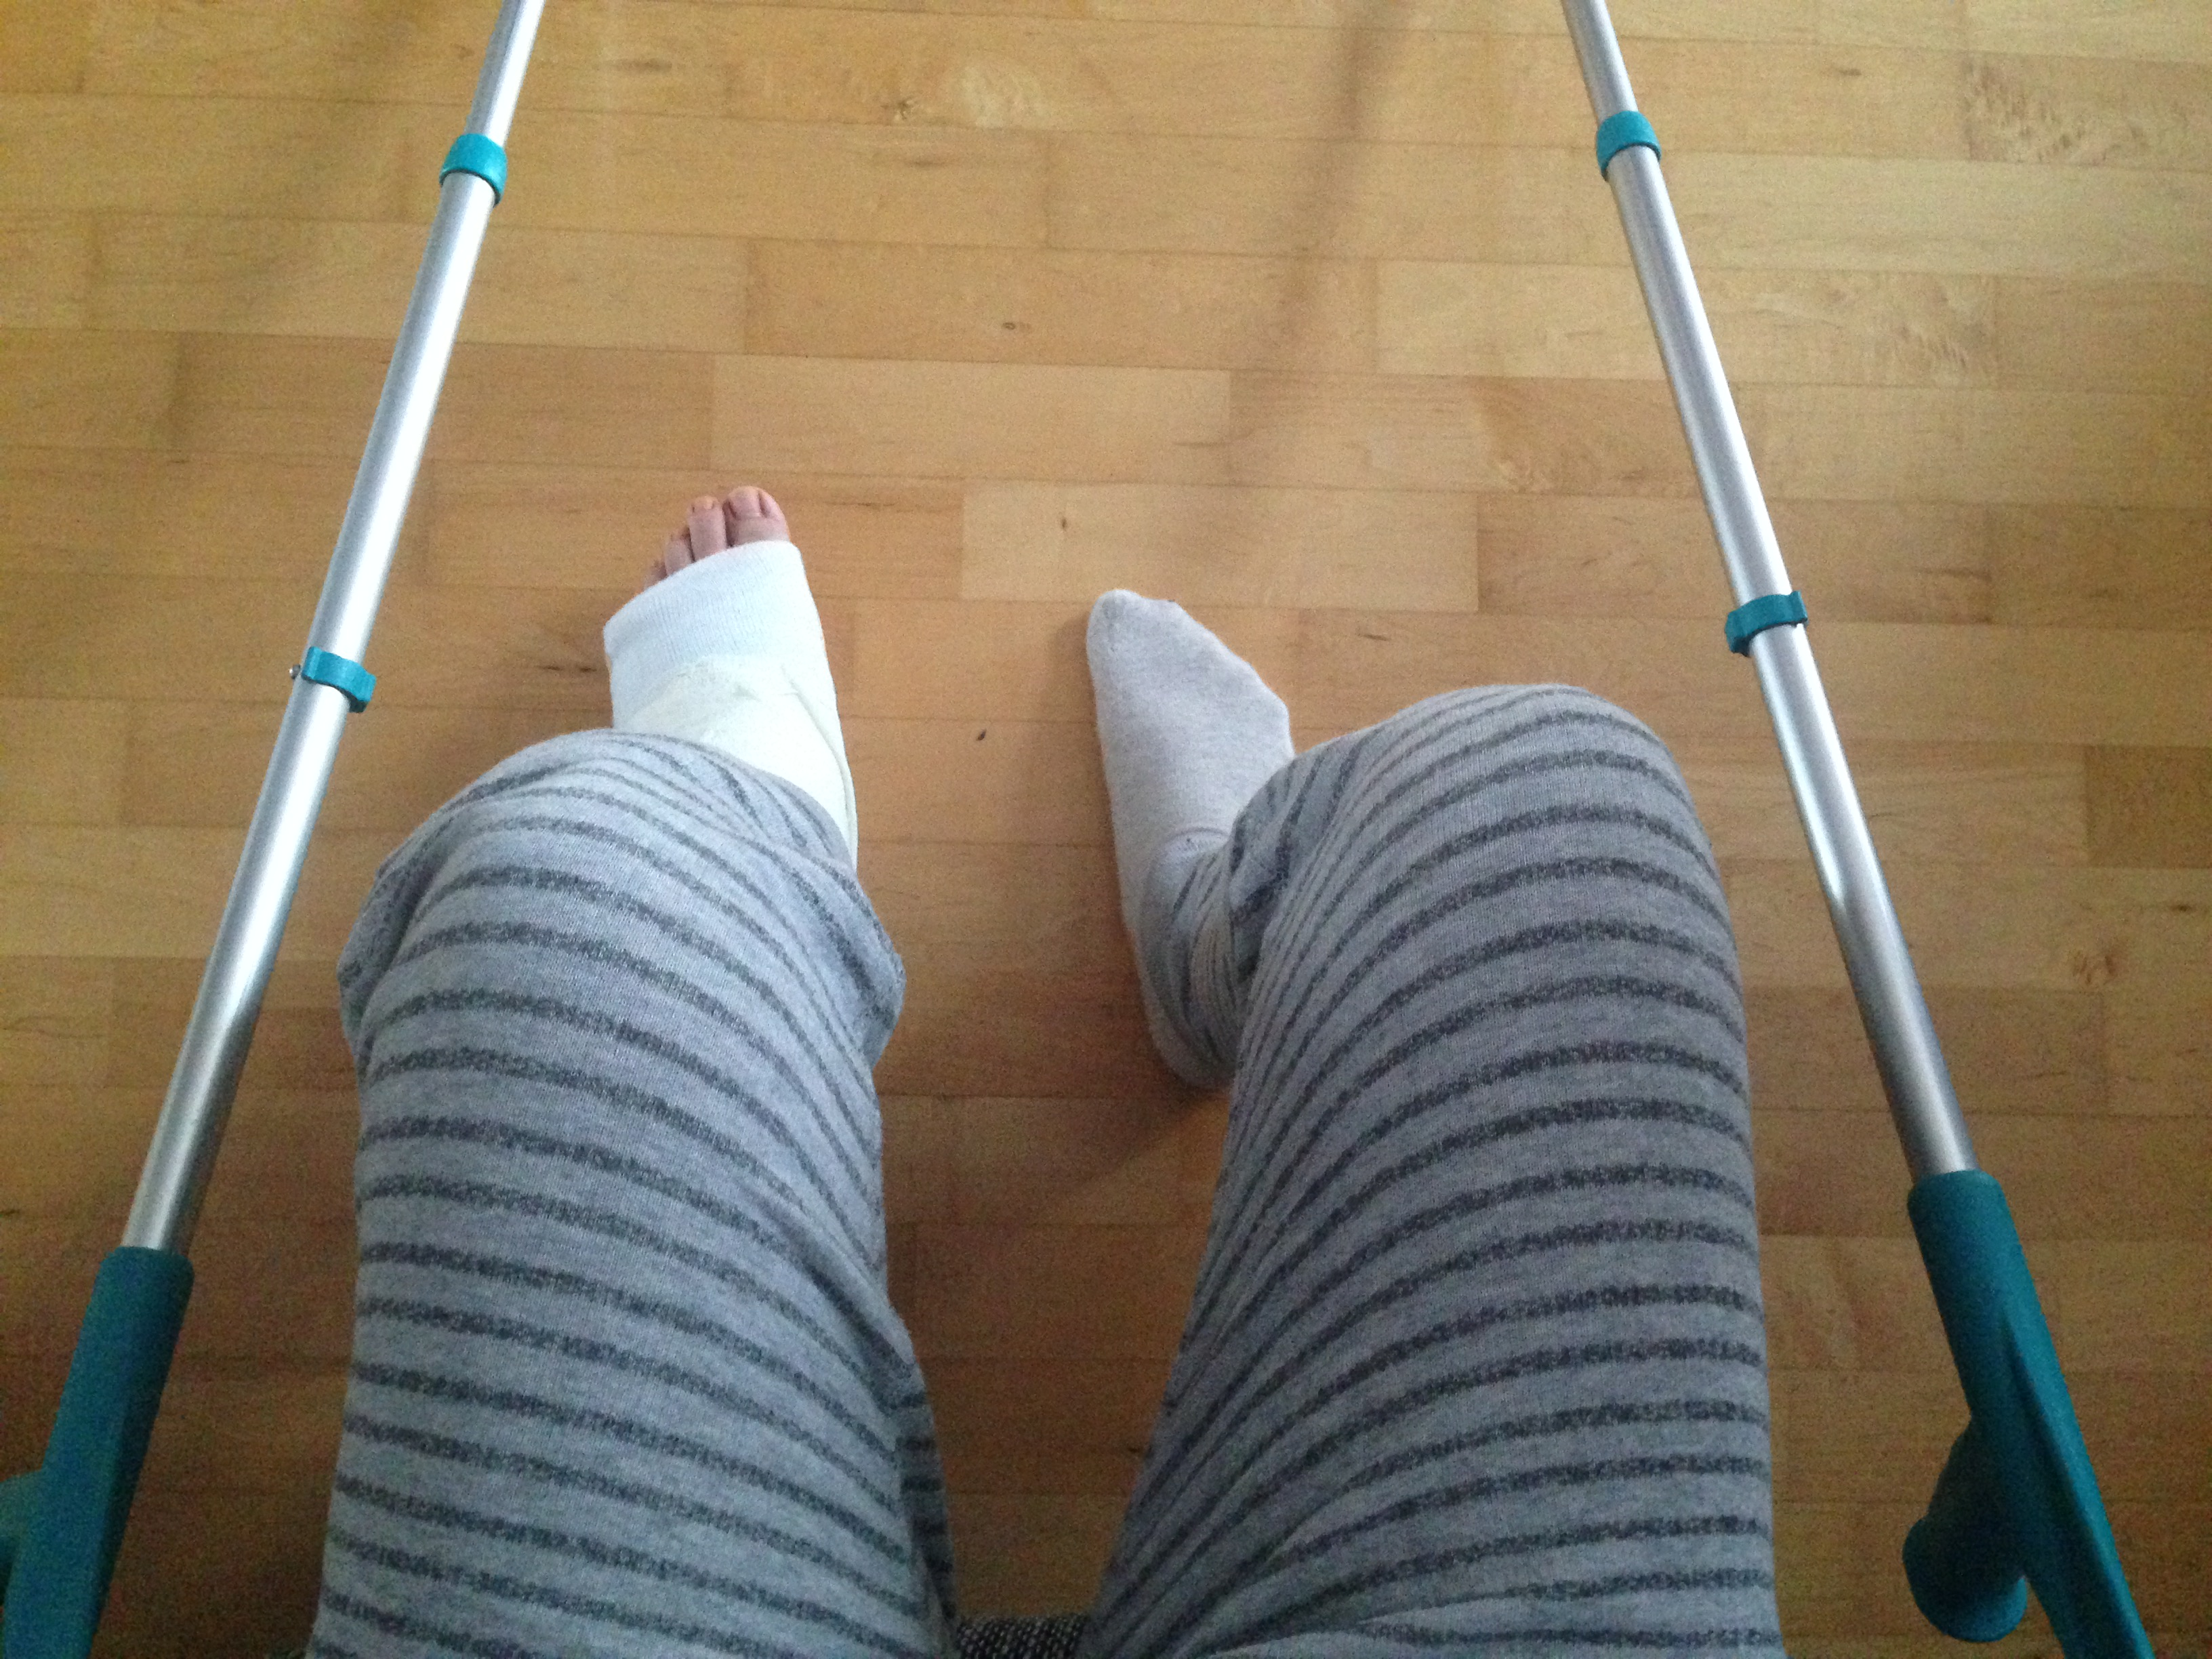 Lagerkoller, Geradeaus, Rennradblog, Operation, Post Surgery, Sport, Gesundheit,